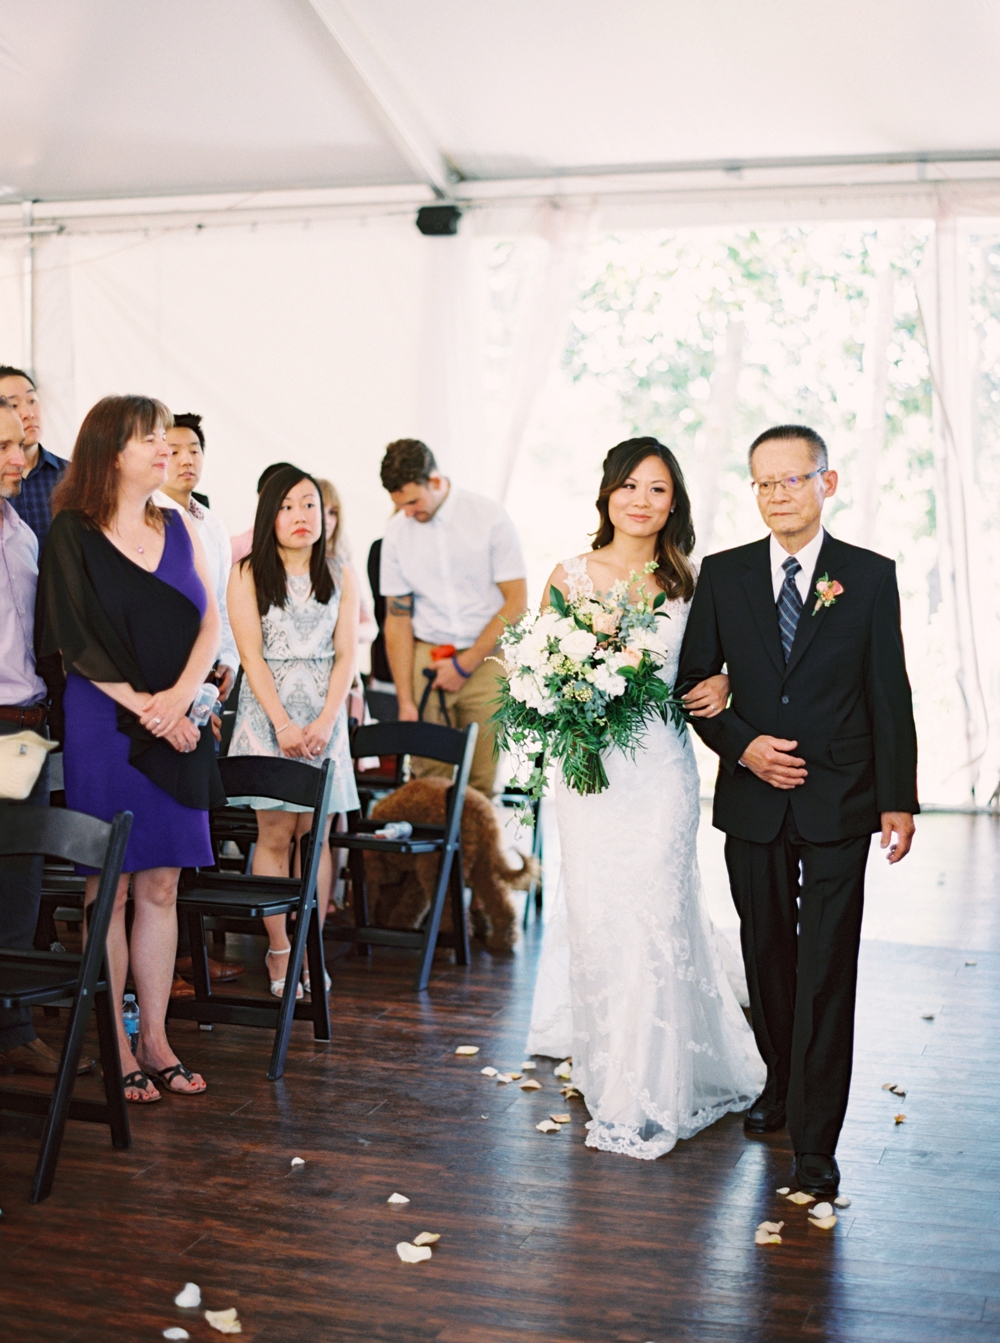 Calgary Wedding Photographer | Meadow Muse Pavilion Wedding | Canmore Photographers | Fish Creek Park Wedding Ceremony | Tent Wedding